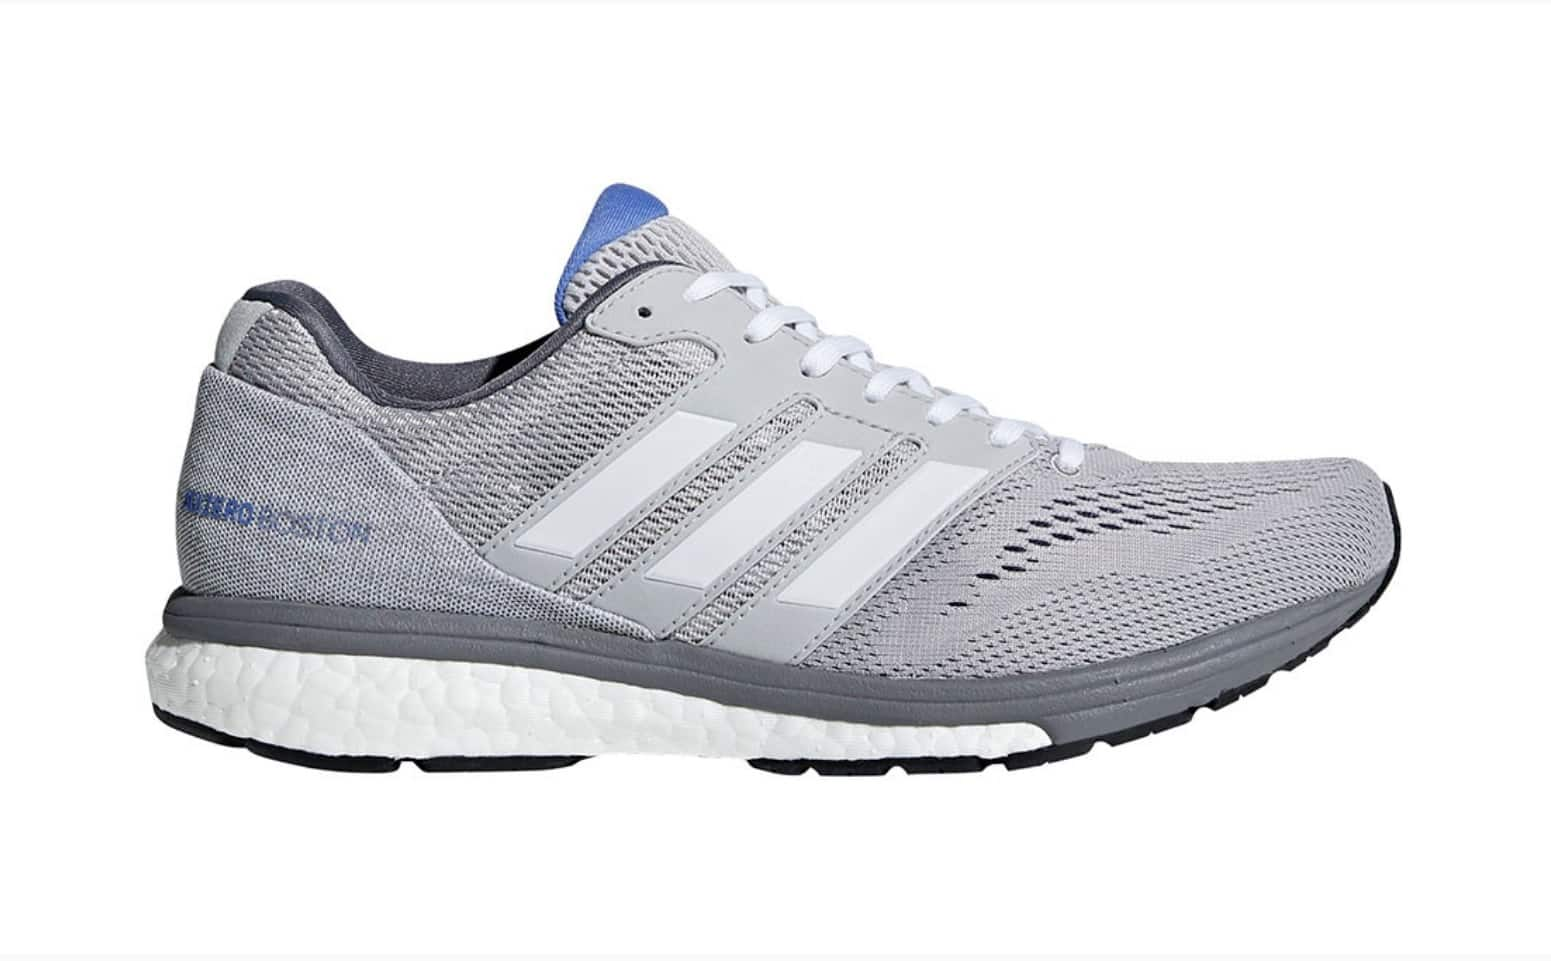 3f79bbb8645ea discount adidas ultra boost 10 of the best running shoes for men health  fitness 22ae4 ad59d  where can i buy adidas adizero boston 7 running shoes  mens ...